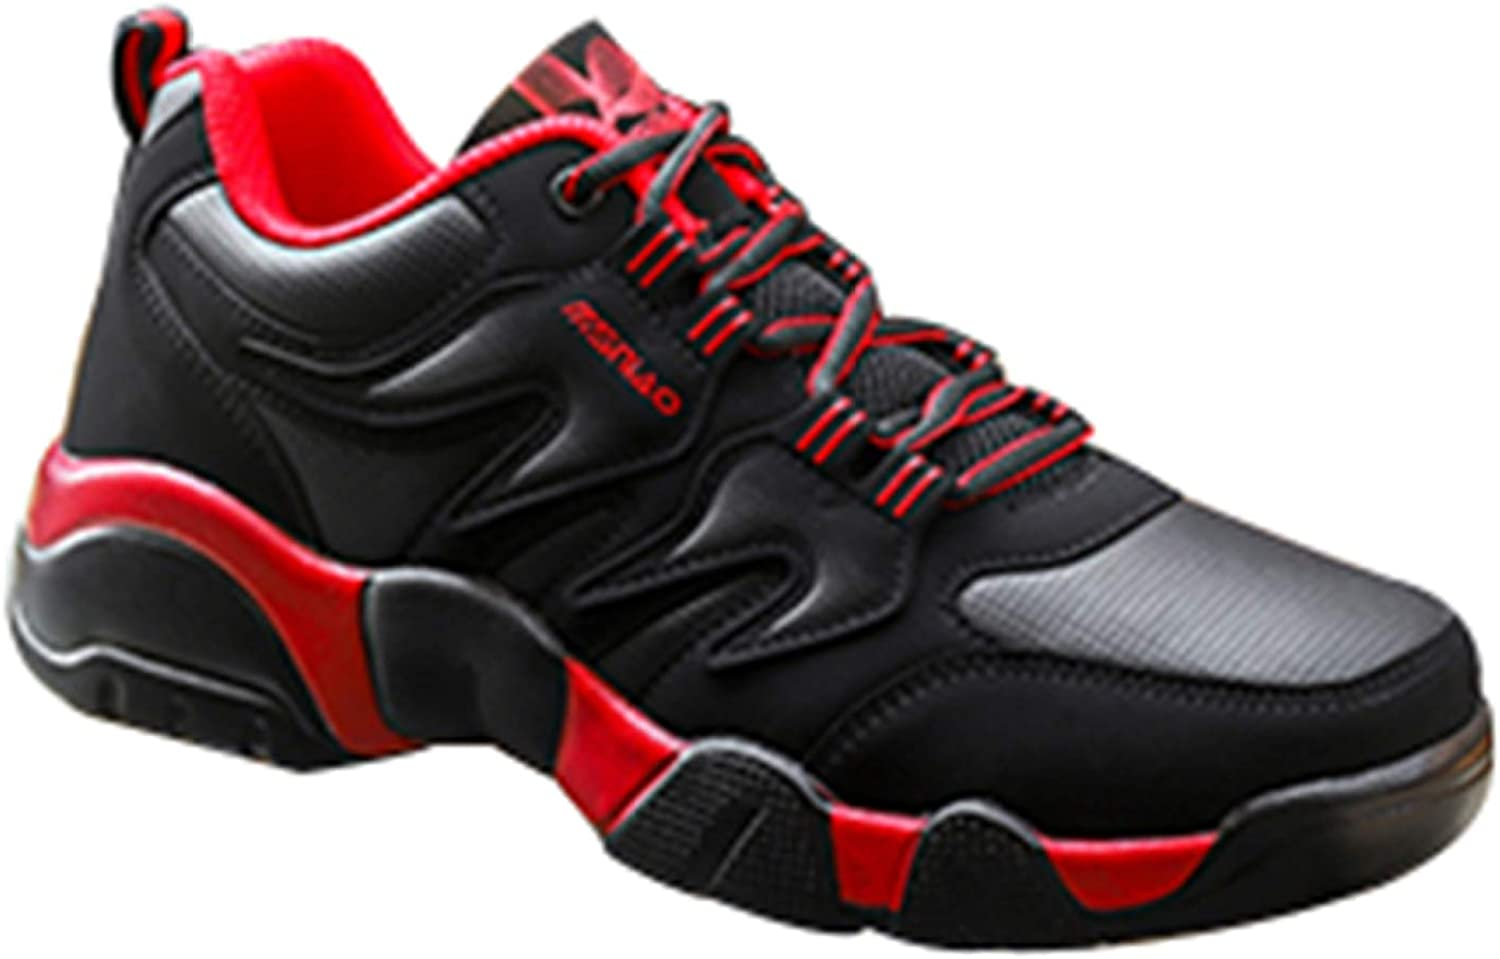 Men's Sports shoes Casual shoes Running shoes Fashion Basketball shoes